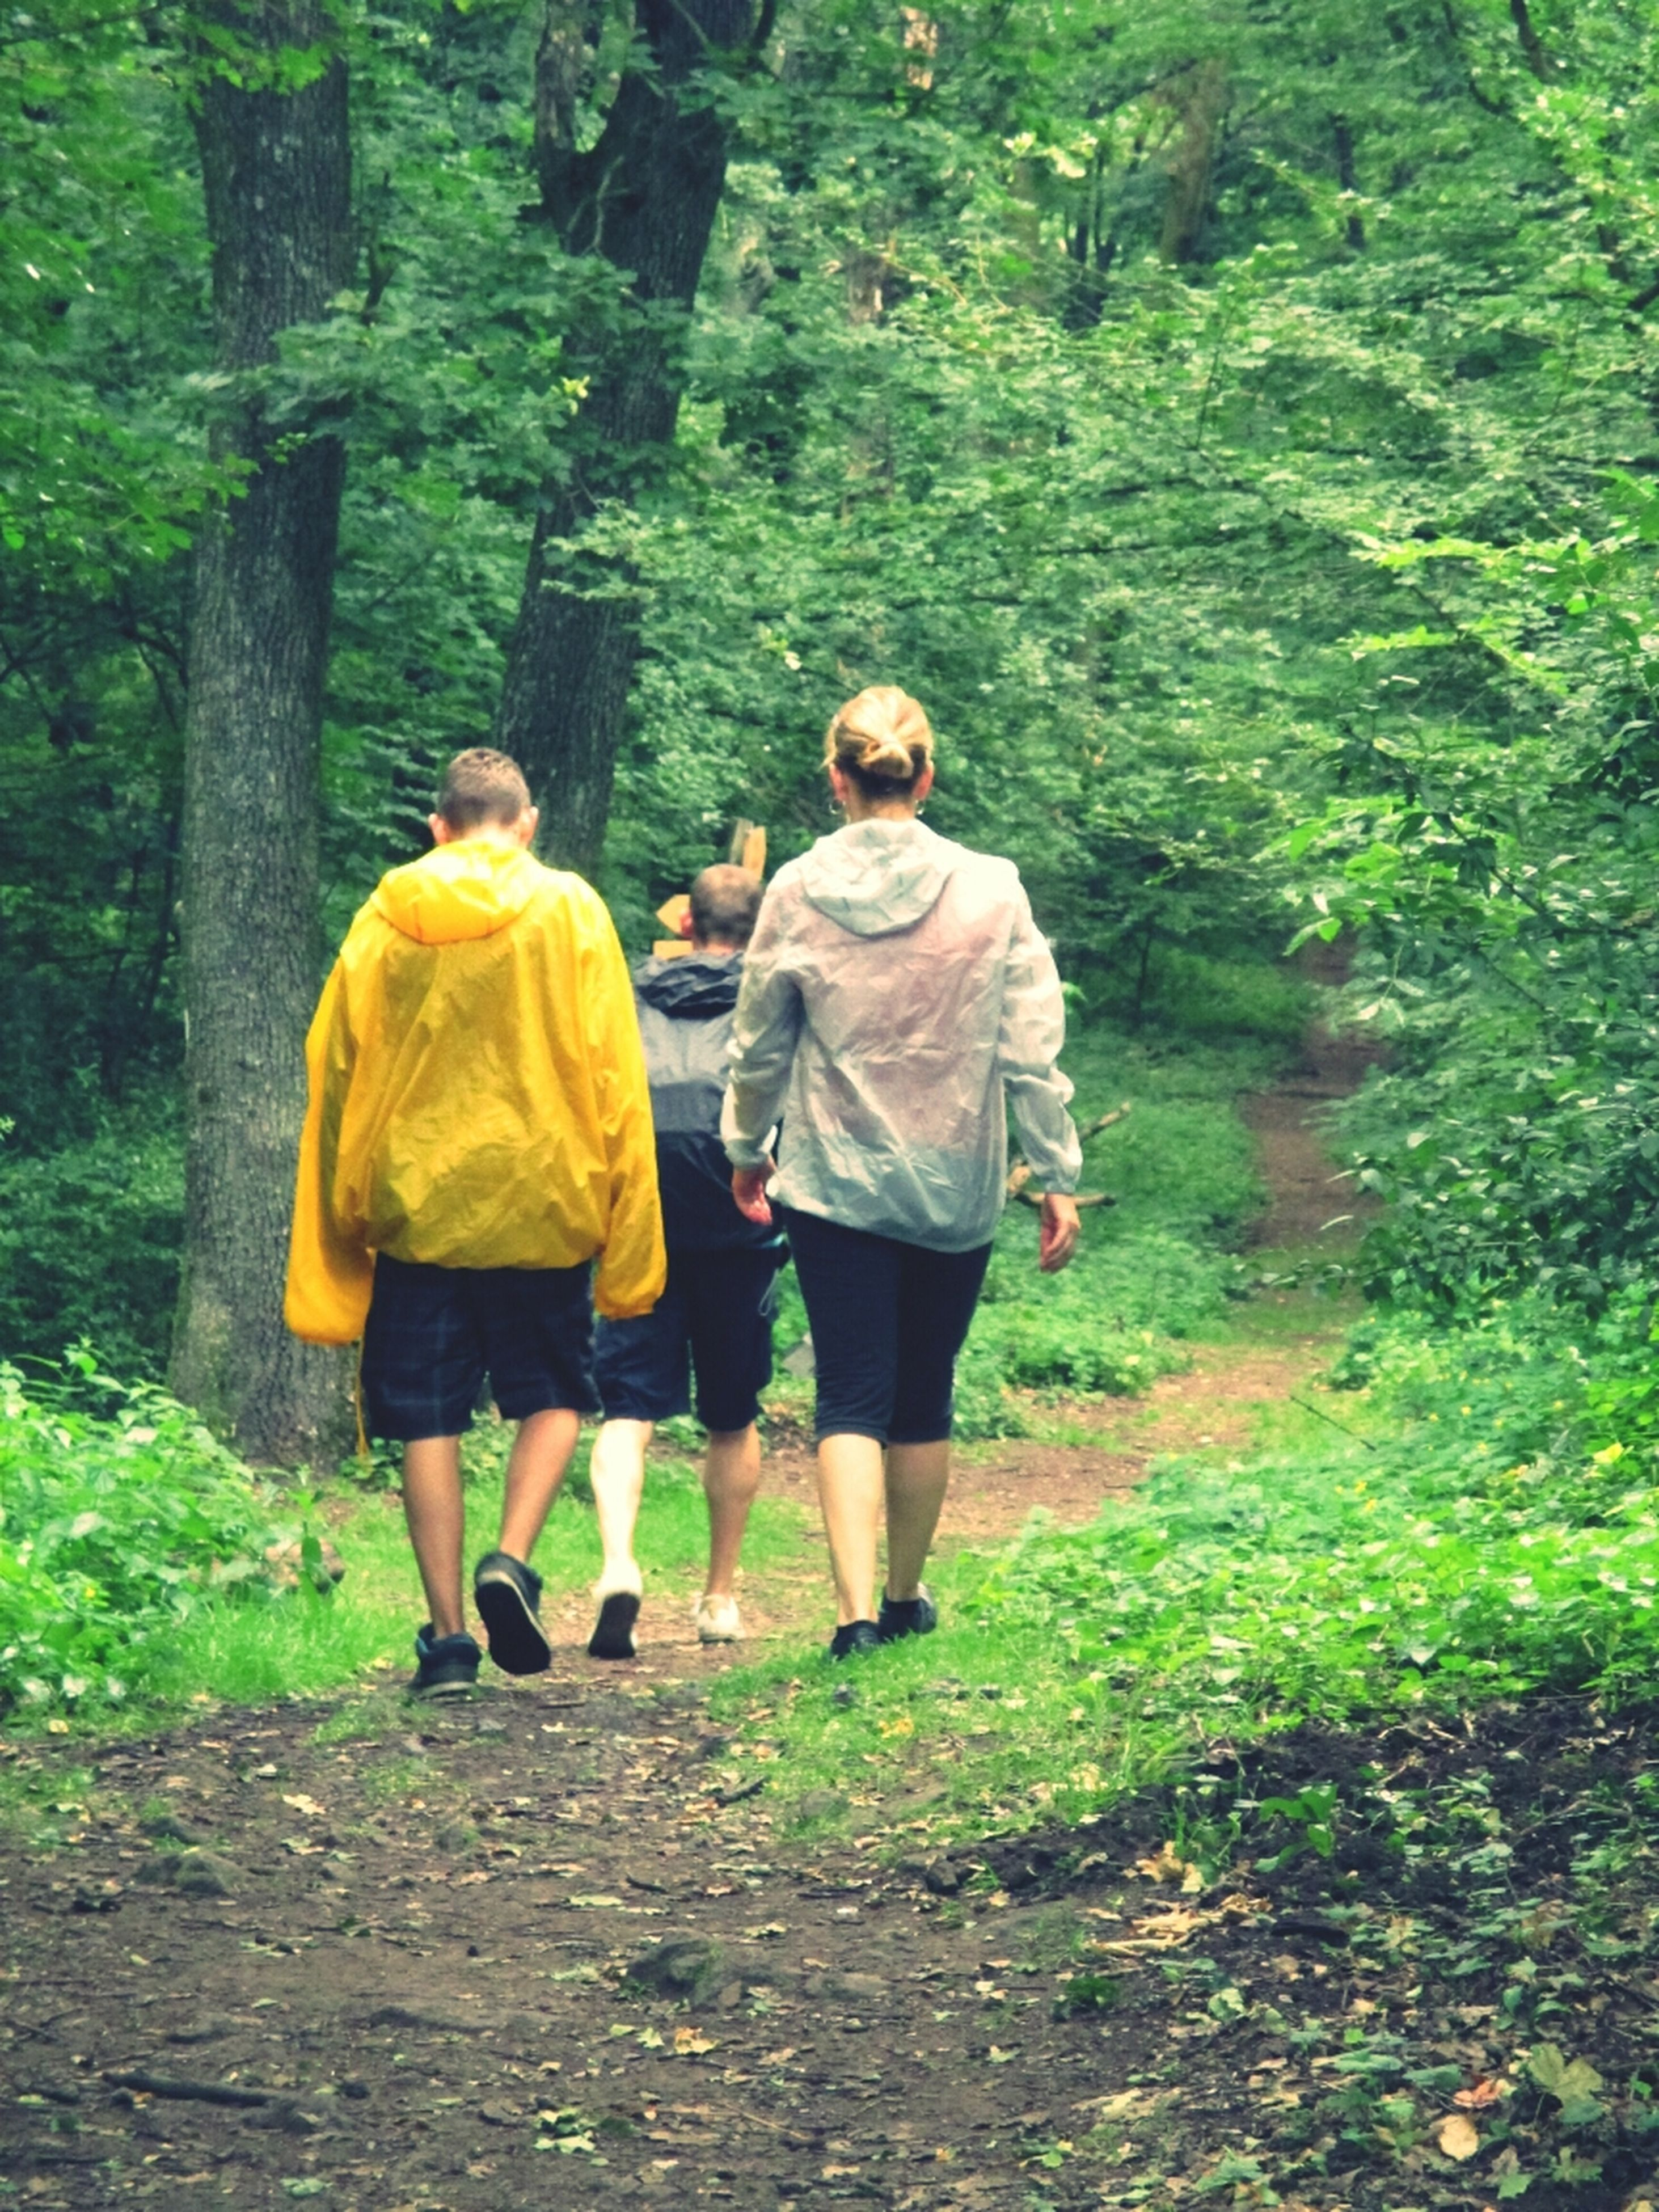 full length, lifestyles, rear view, leisure activity, togetherness, casual clothing, bonding, walking, tree, men, person, love, boys, family, growth, green color, friendship, nature